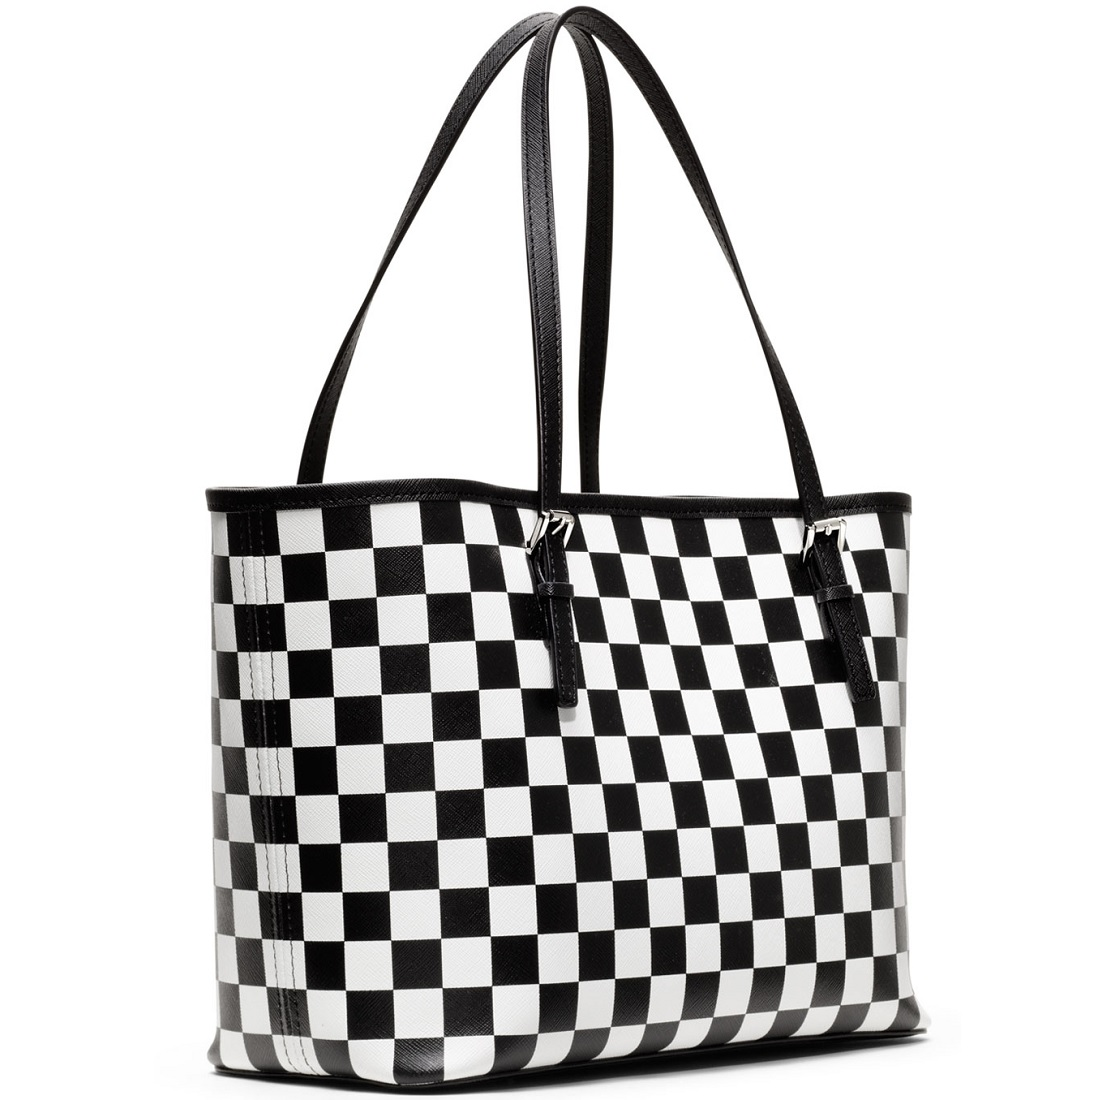 9bc950a9d25a49 Michael Kors Black And White Checkerboard Purse | Stanford Center ...